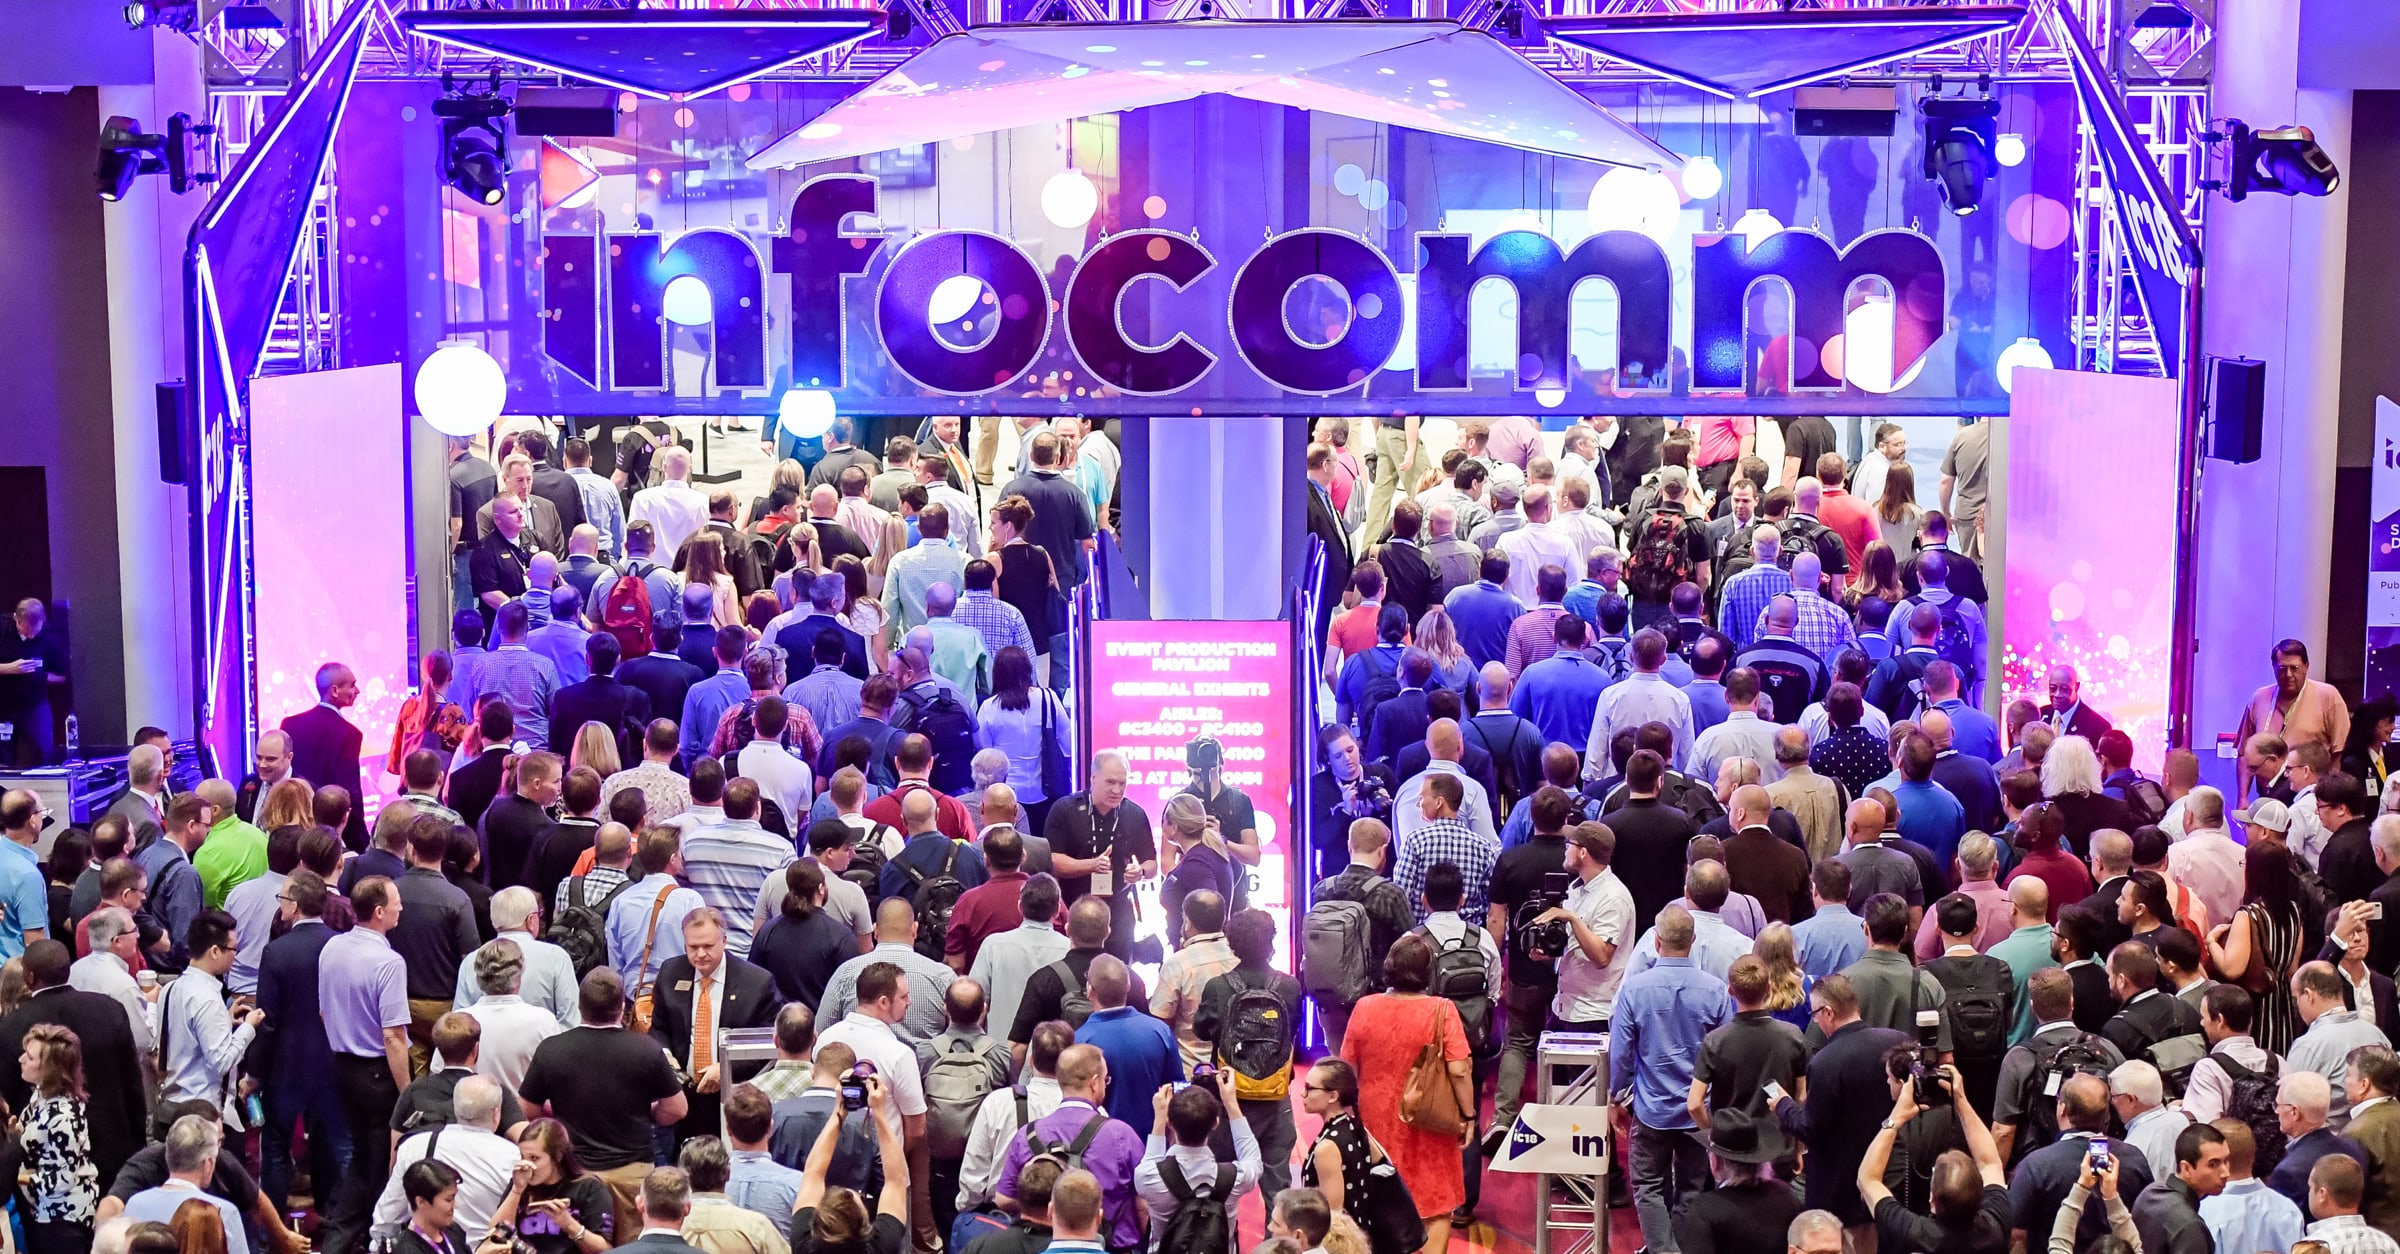 Lifesize is heading to InfoComm 2019 in Orlando, Florida! Stop by booth #3761 for all things Lifesize and experience 4K video conferencing in action.